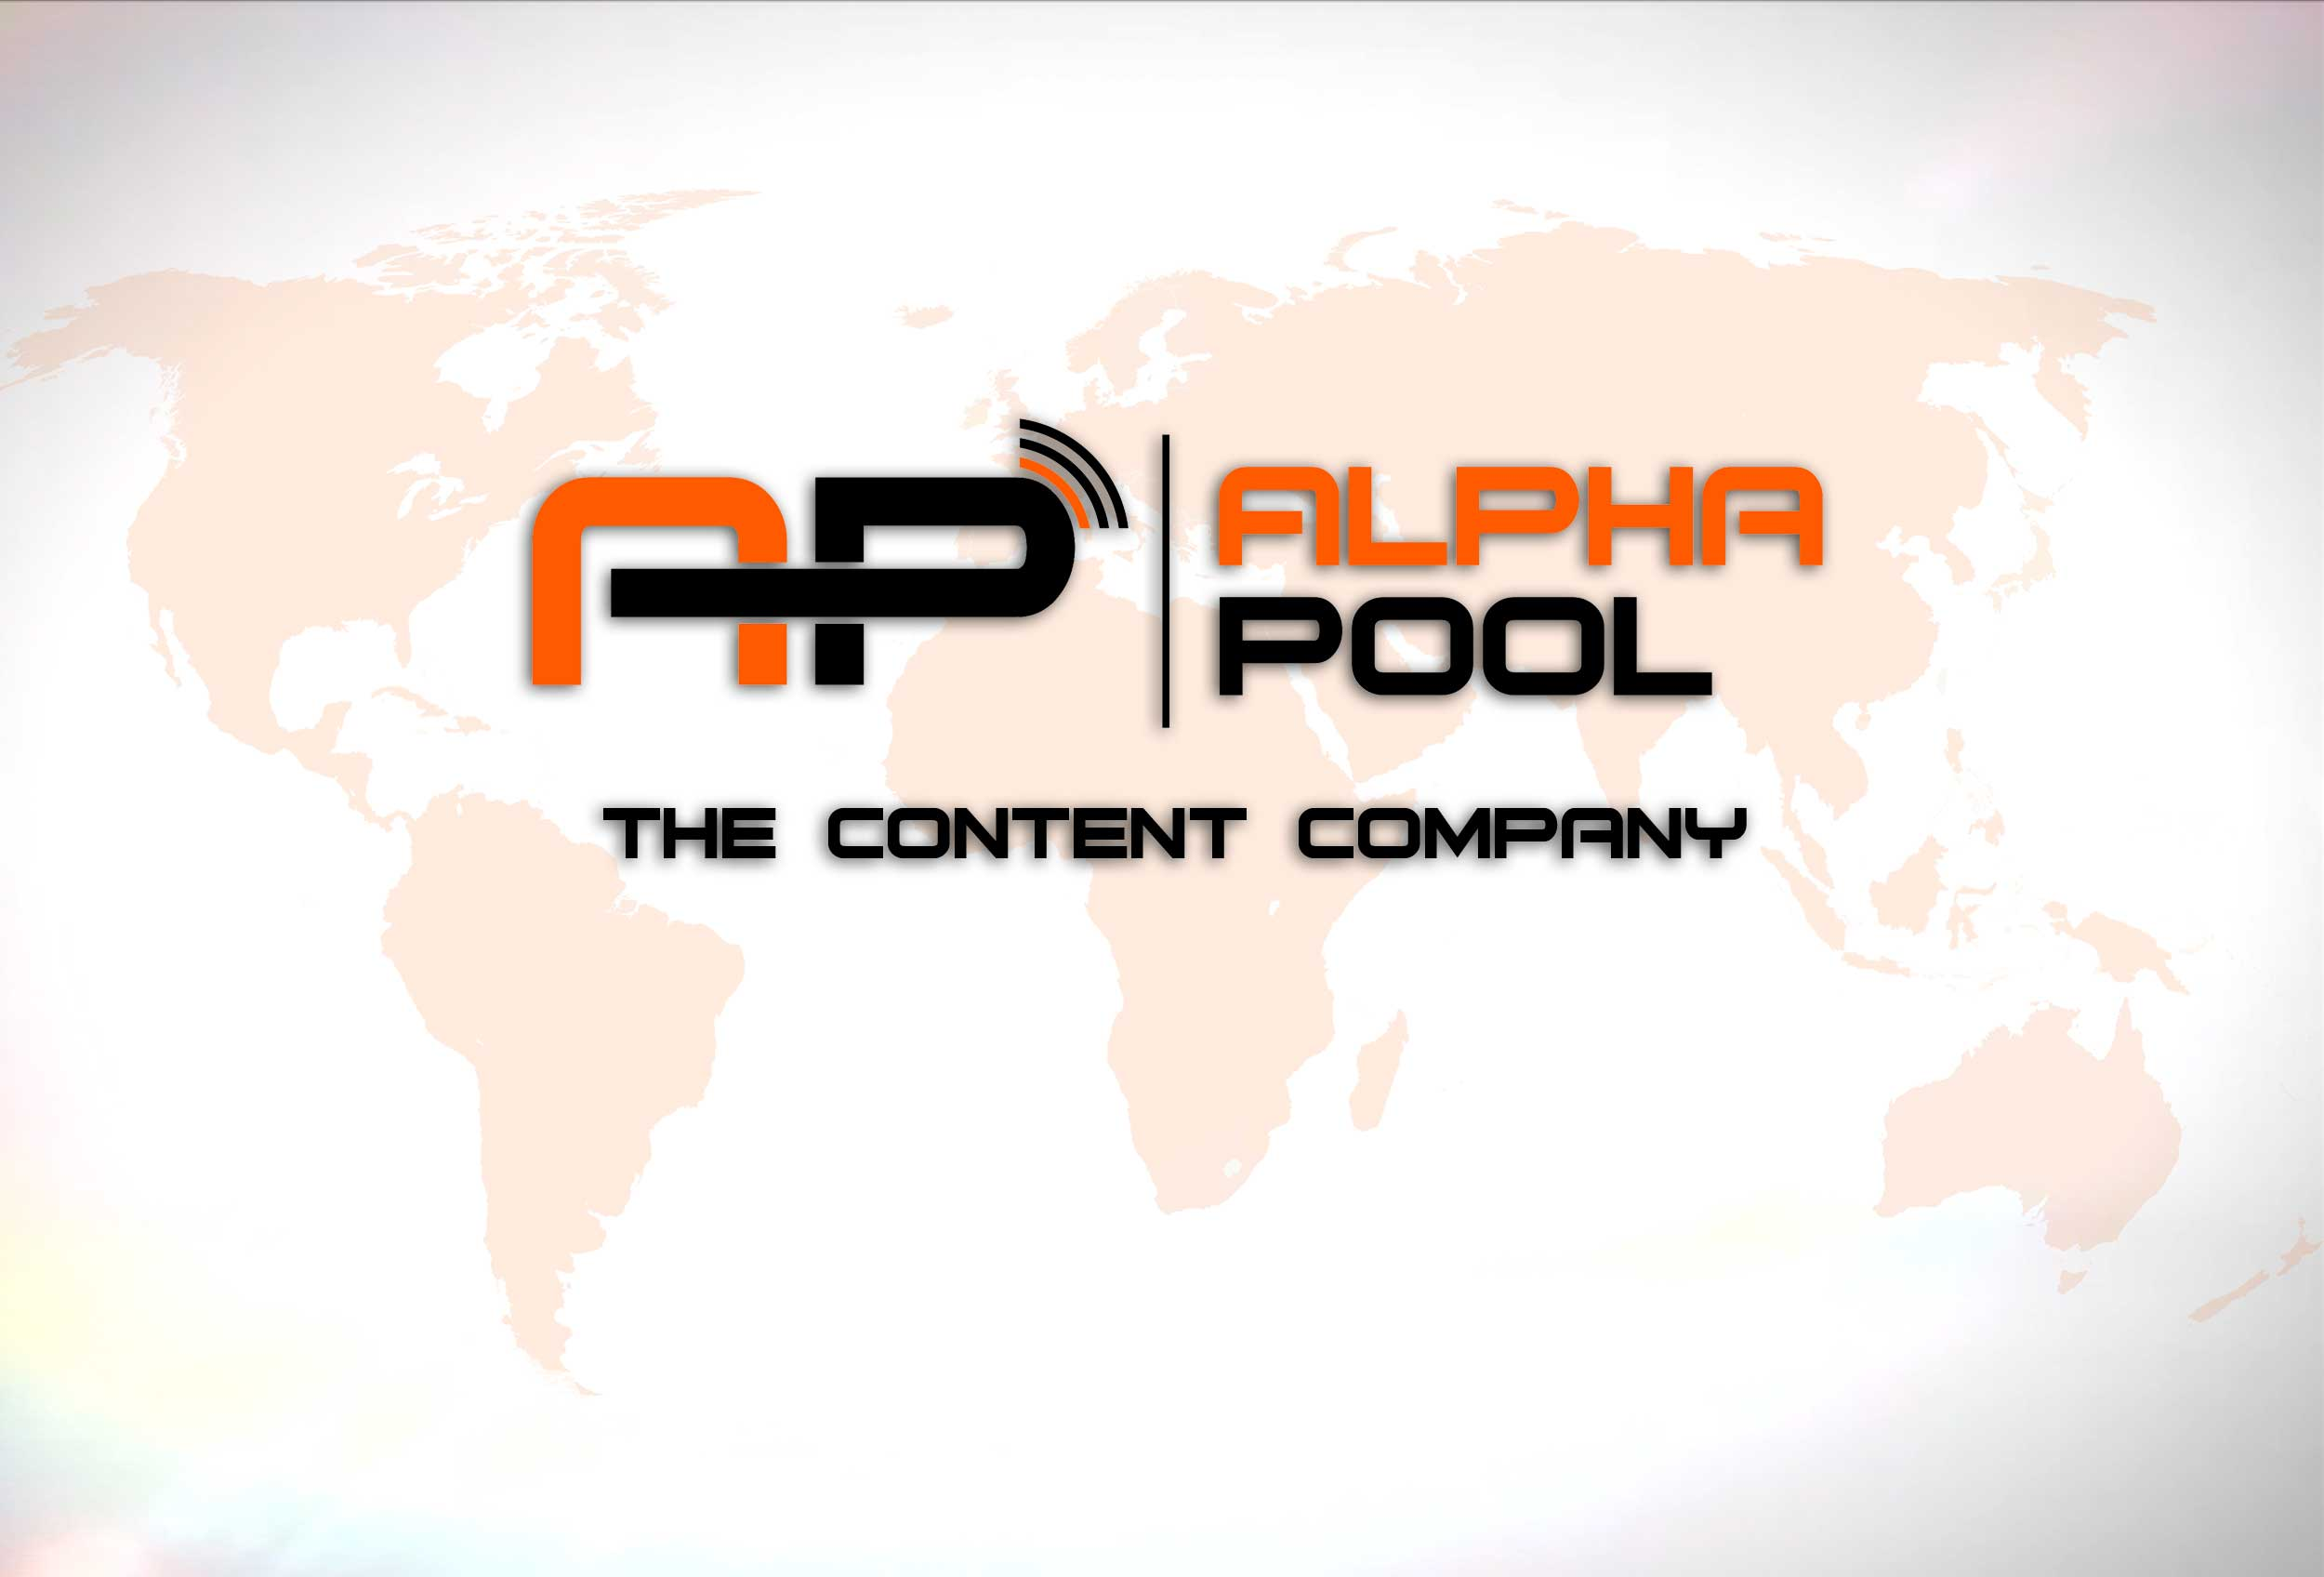 ALPHA POOL - the content company